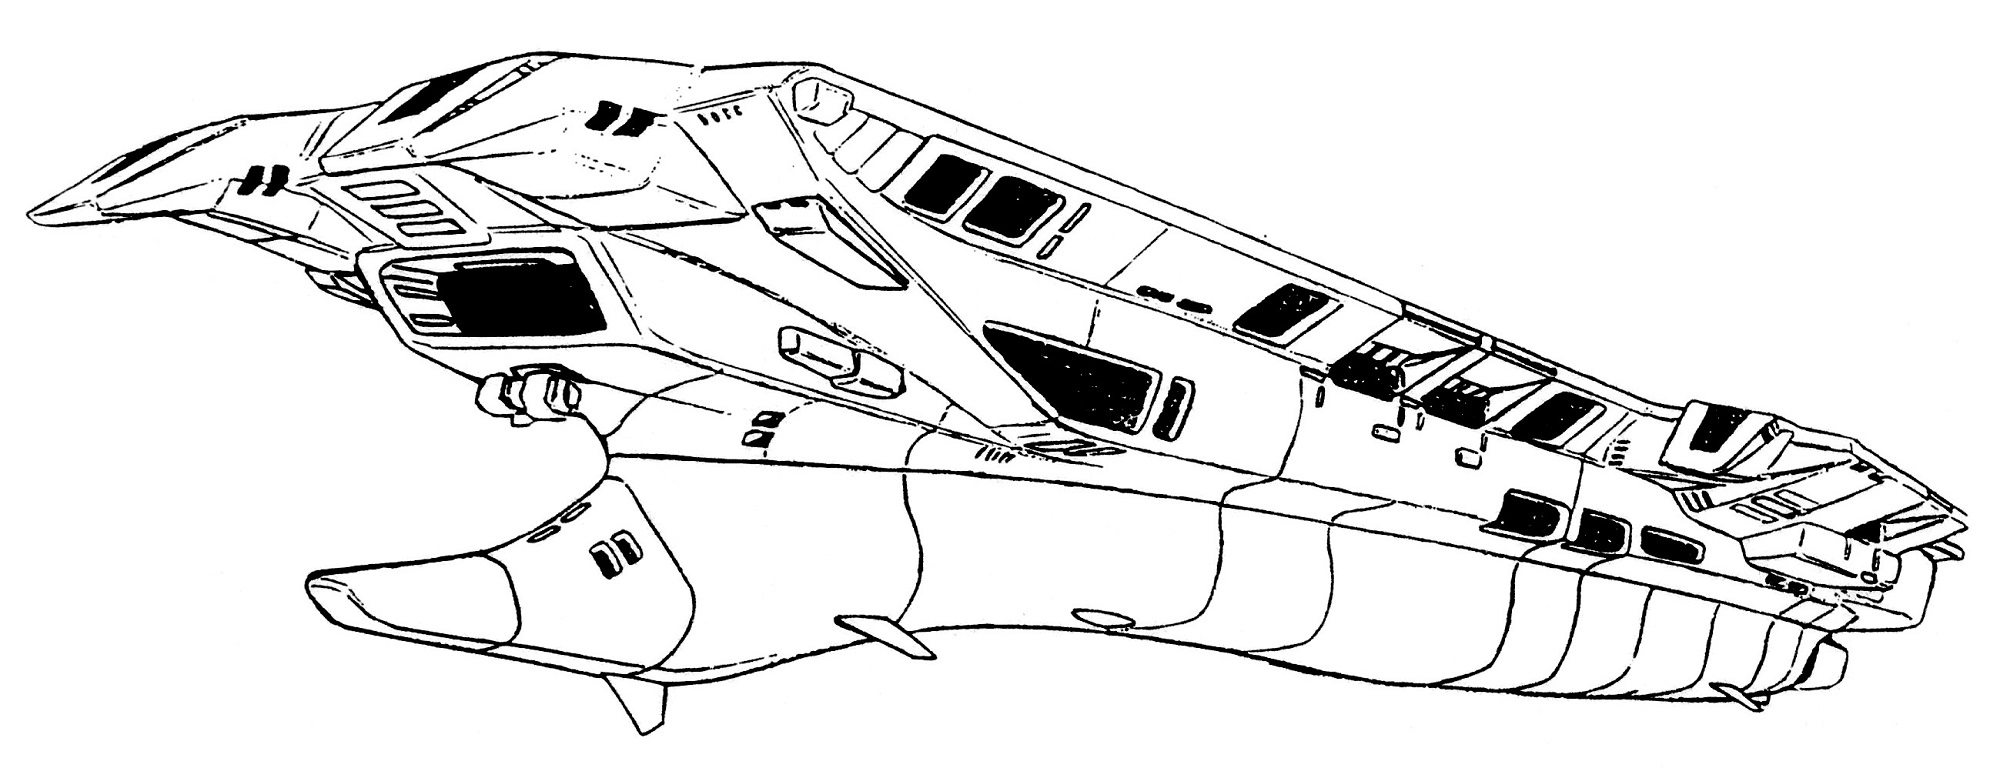 Prometheus-class Submersible Aircraft Carrier 2